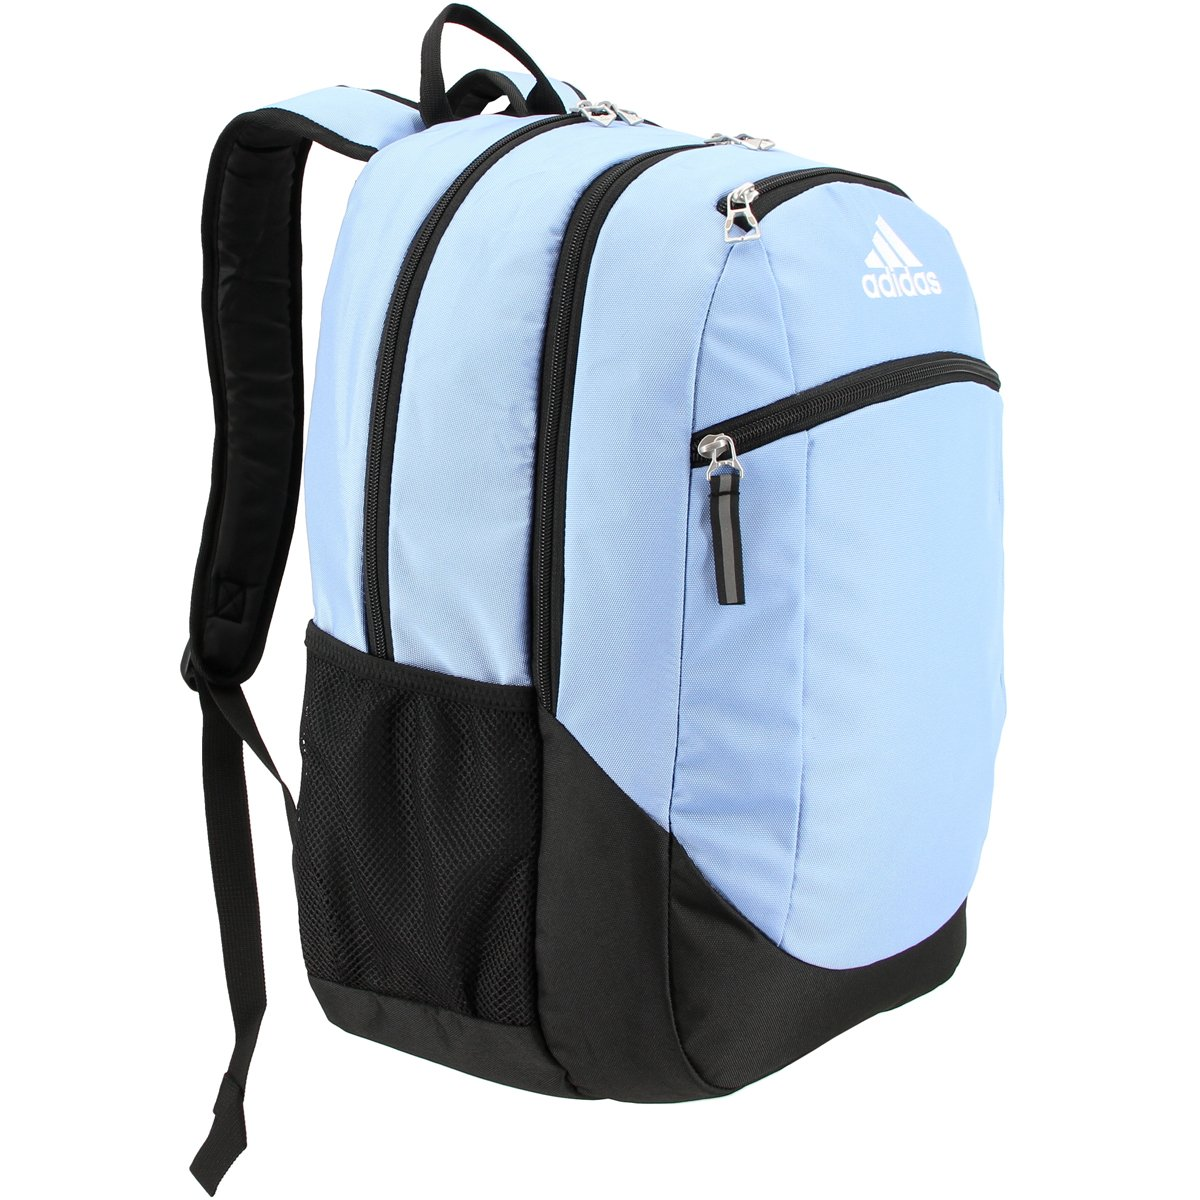 5ad78cde880 adidas Unisex Striker II Team Backpack Collegiate Light Blue Black White